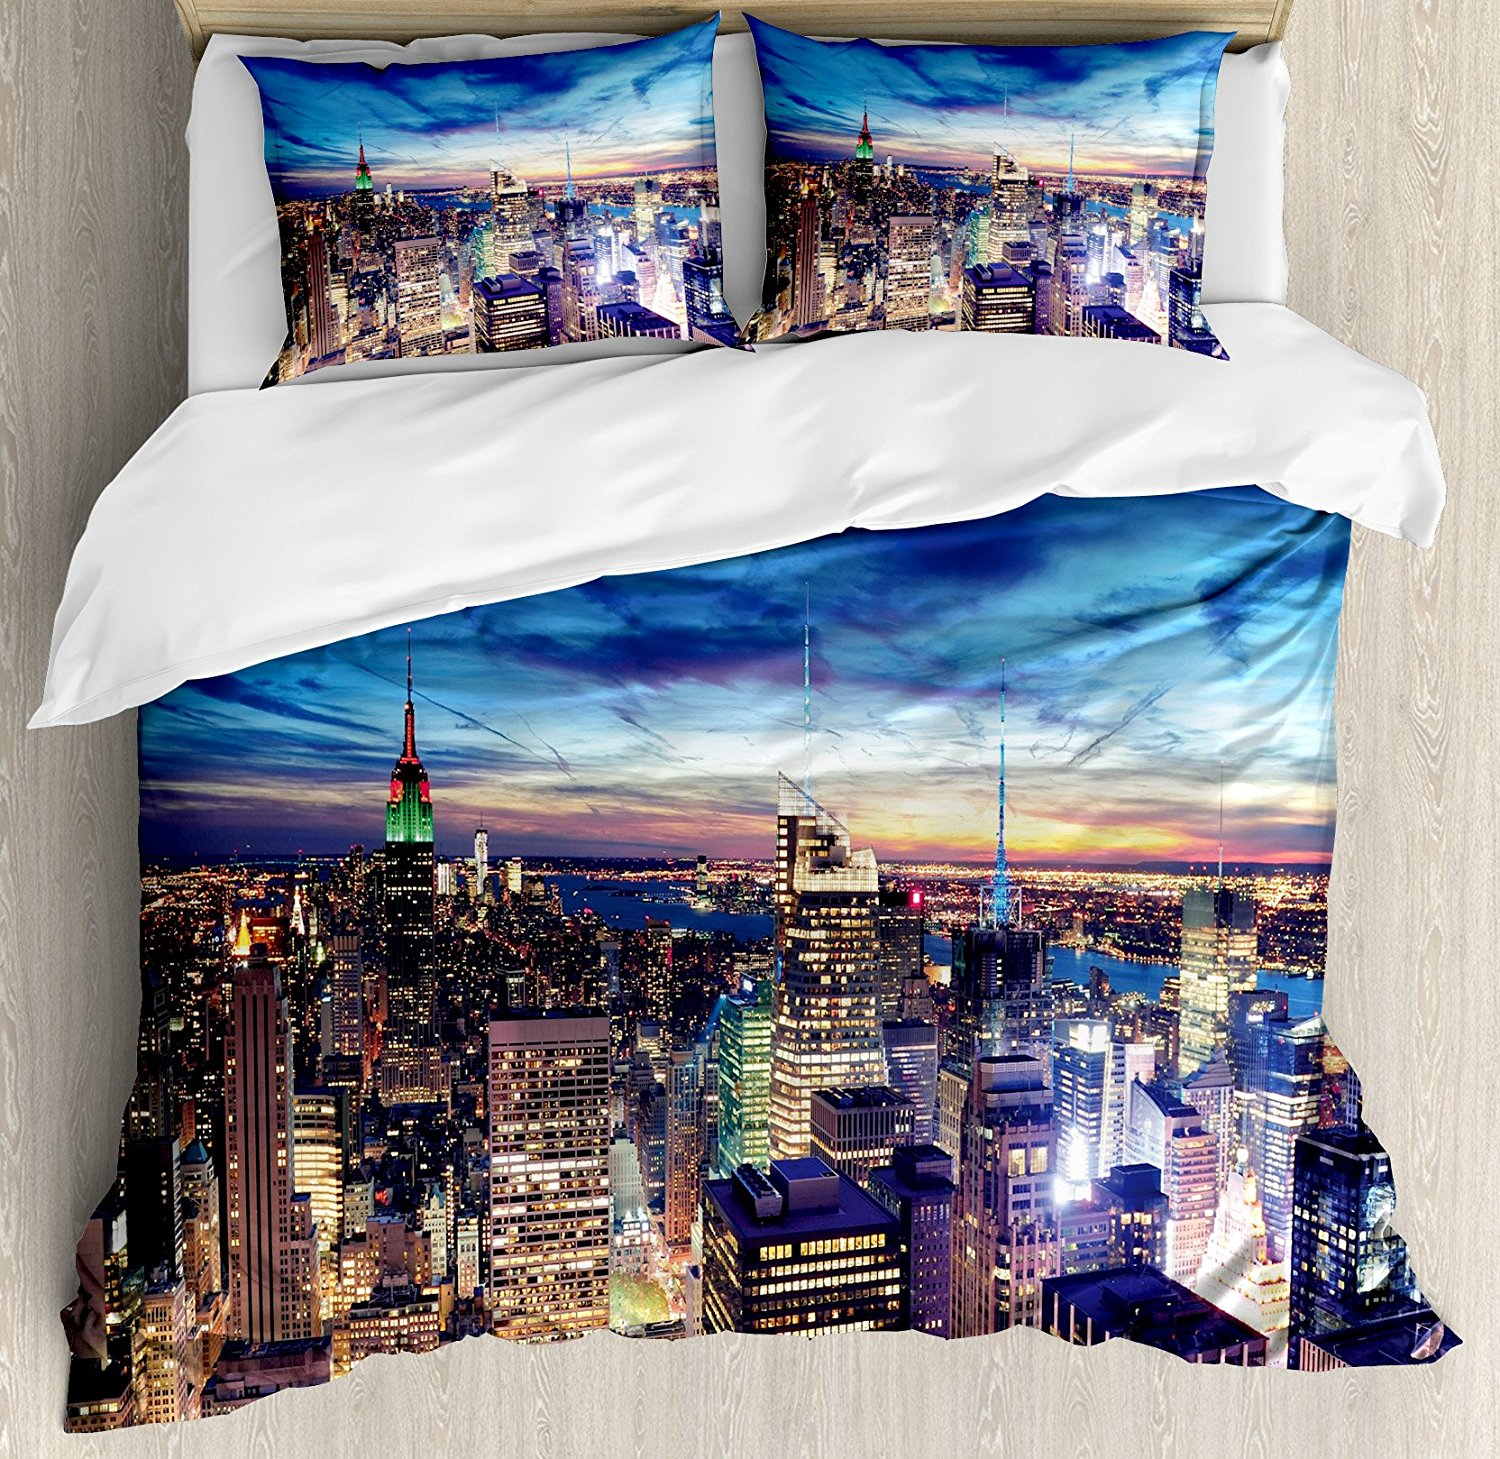 City Duvet Cover Set Empire State and Skyscrapers of Midtown Manhattan New York Aerial View at Dusk, 4 Piece Bedding Set